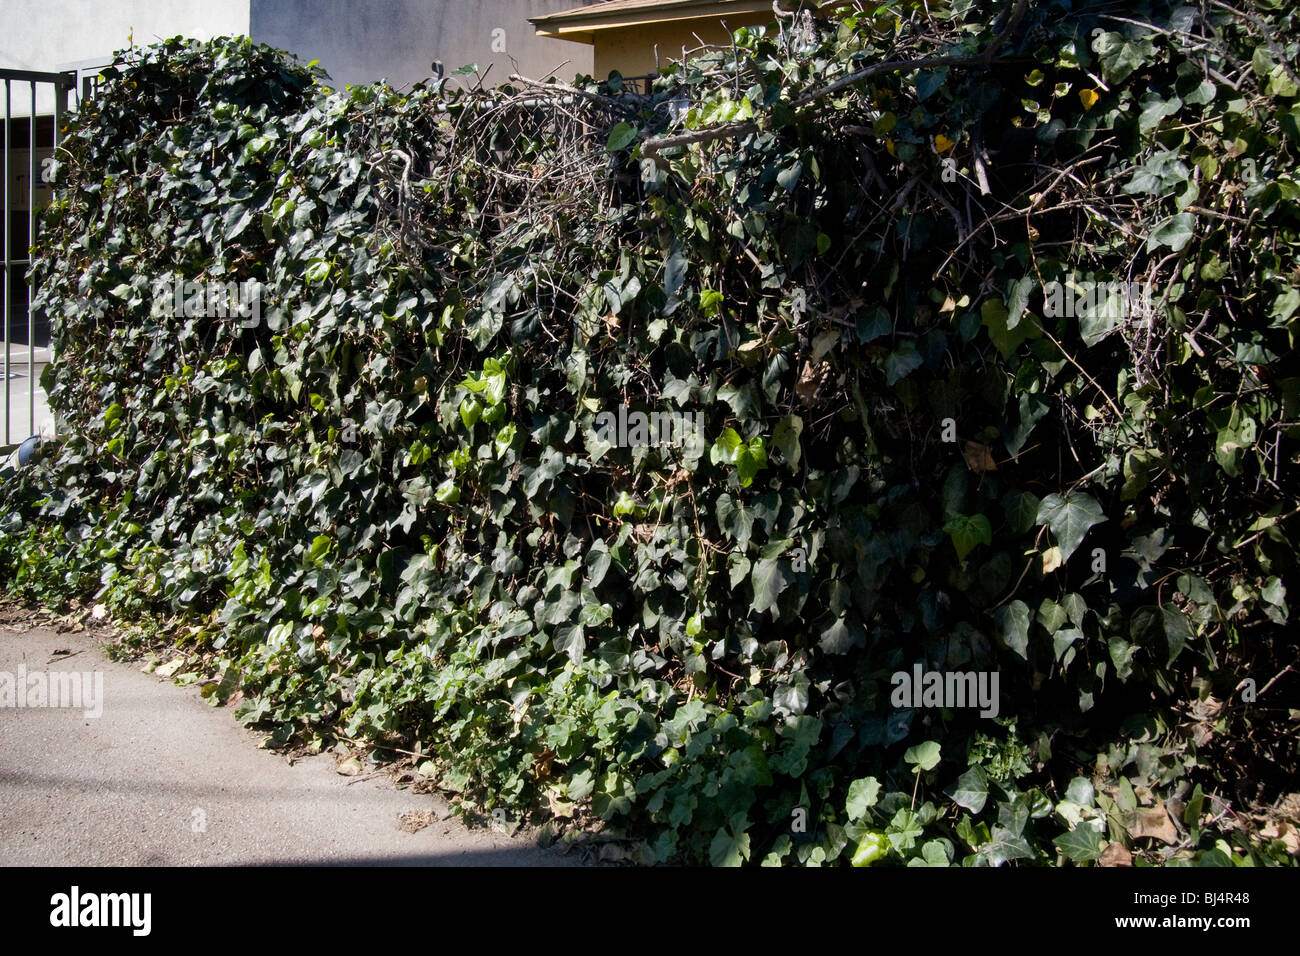 An Algerian Ivy Vine On A Chain Link Fence Illustrates The